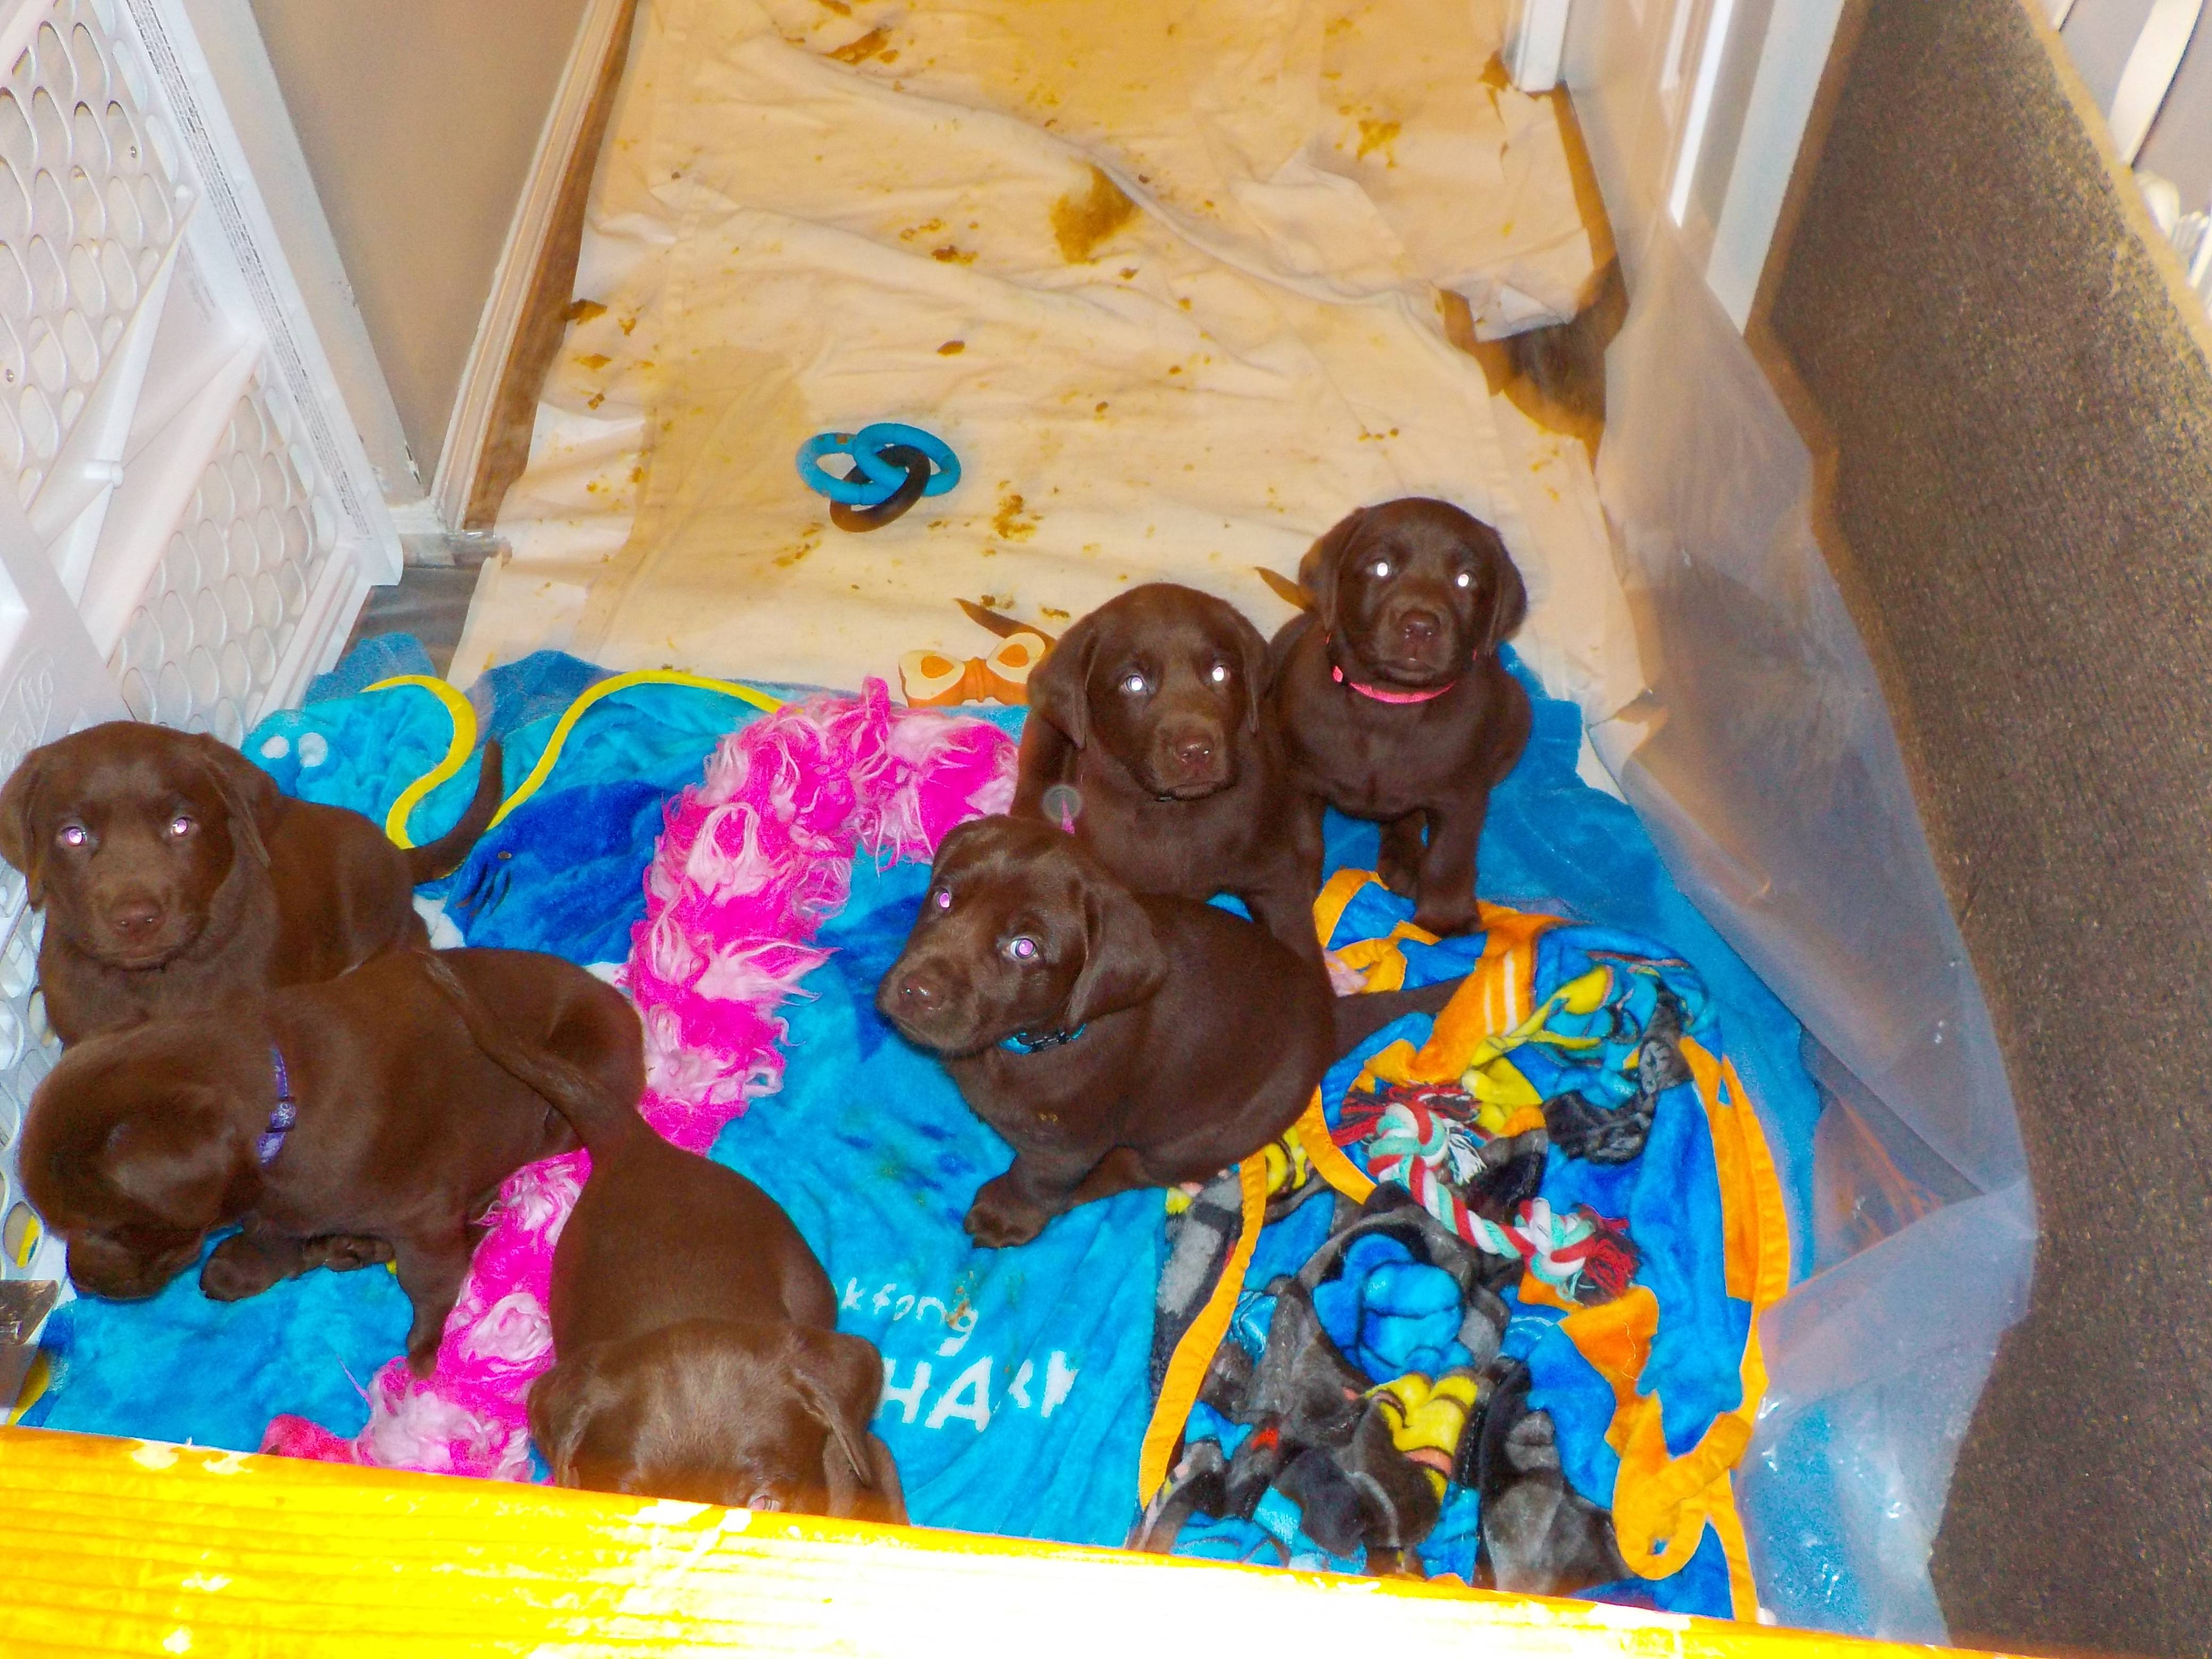 Good Morning Puppies. Did you make this mess?